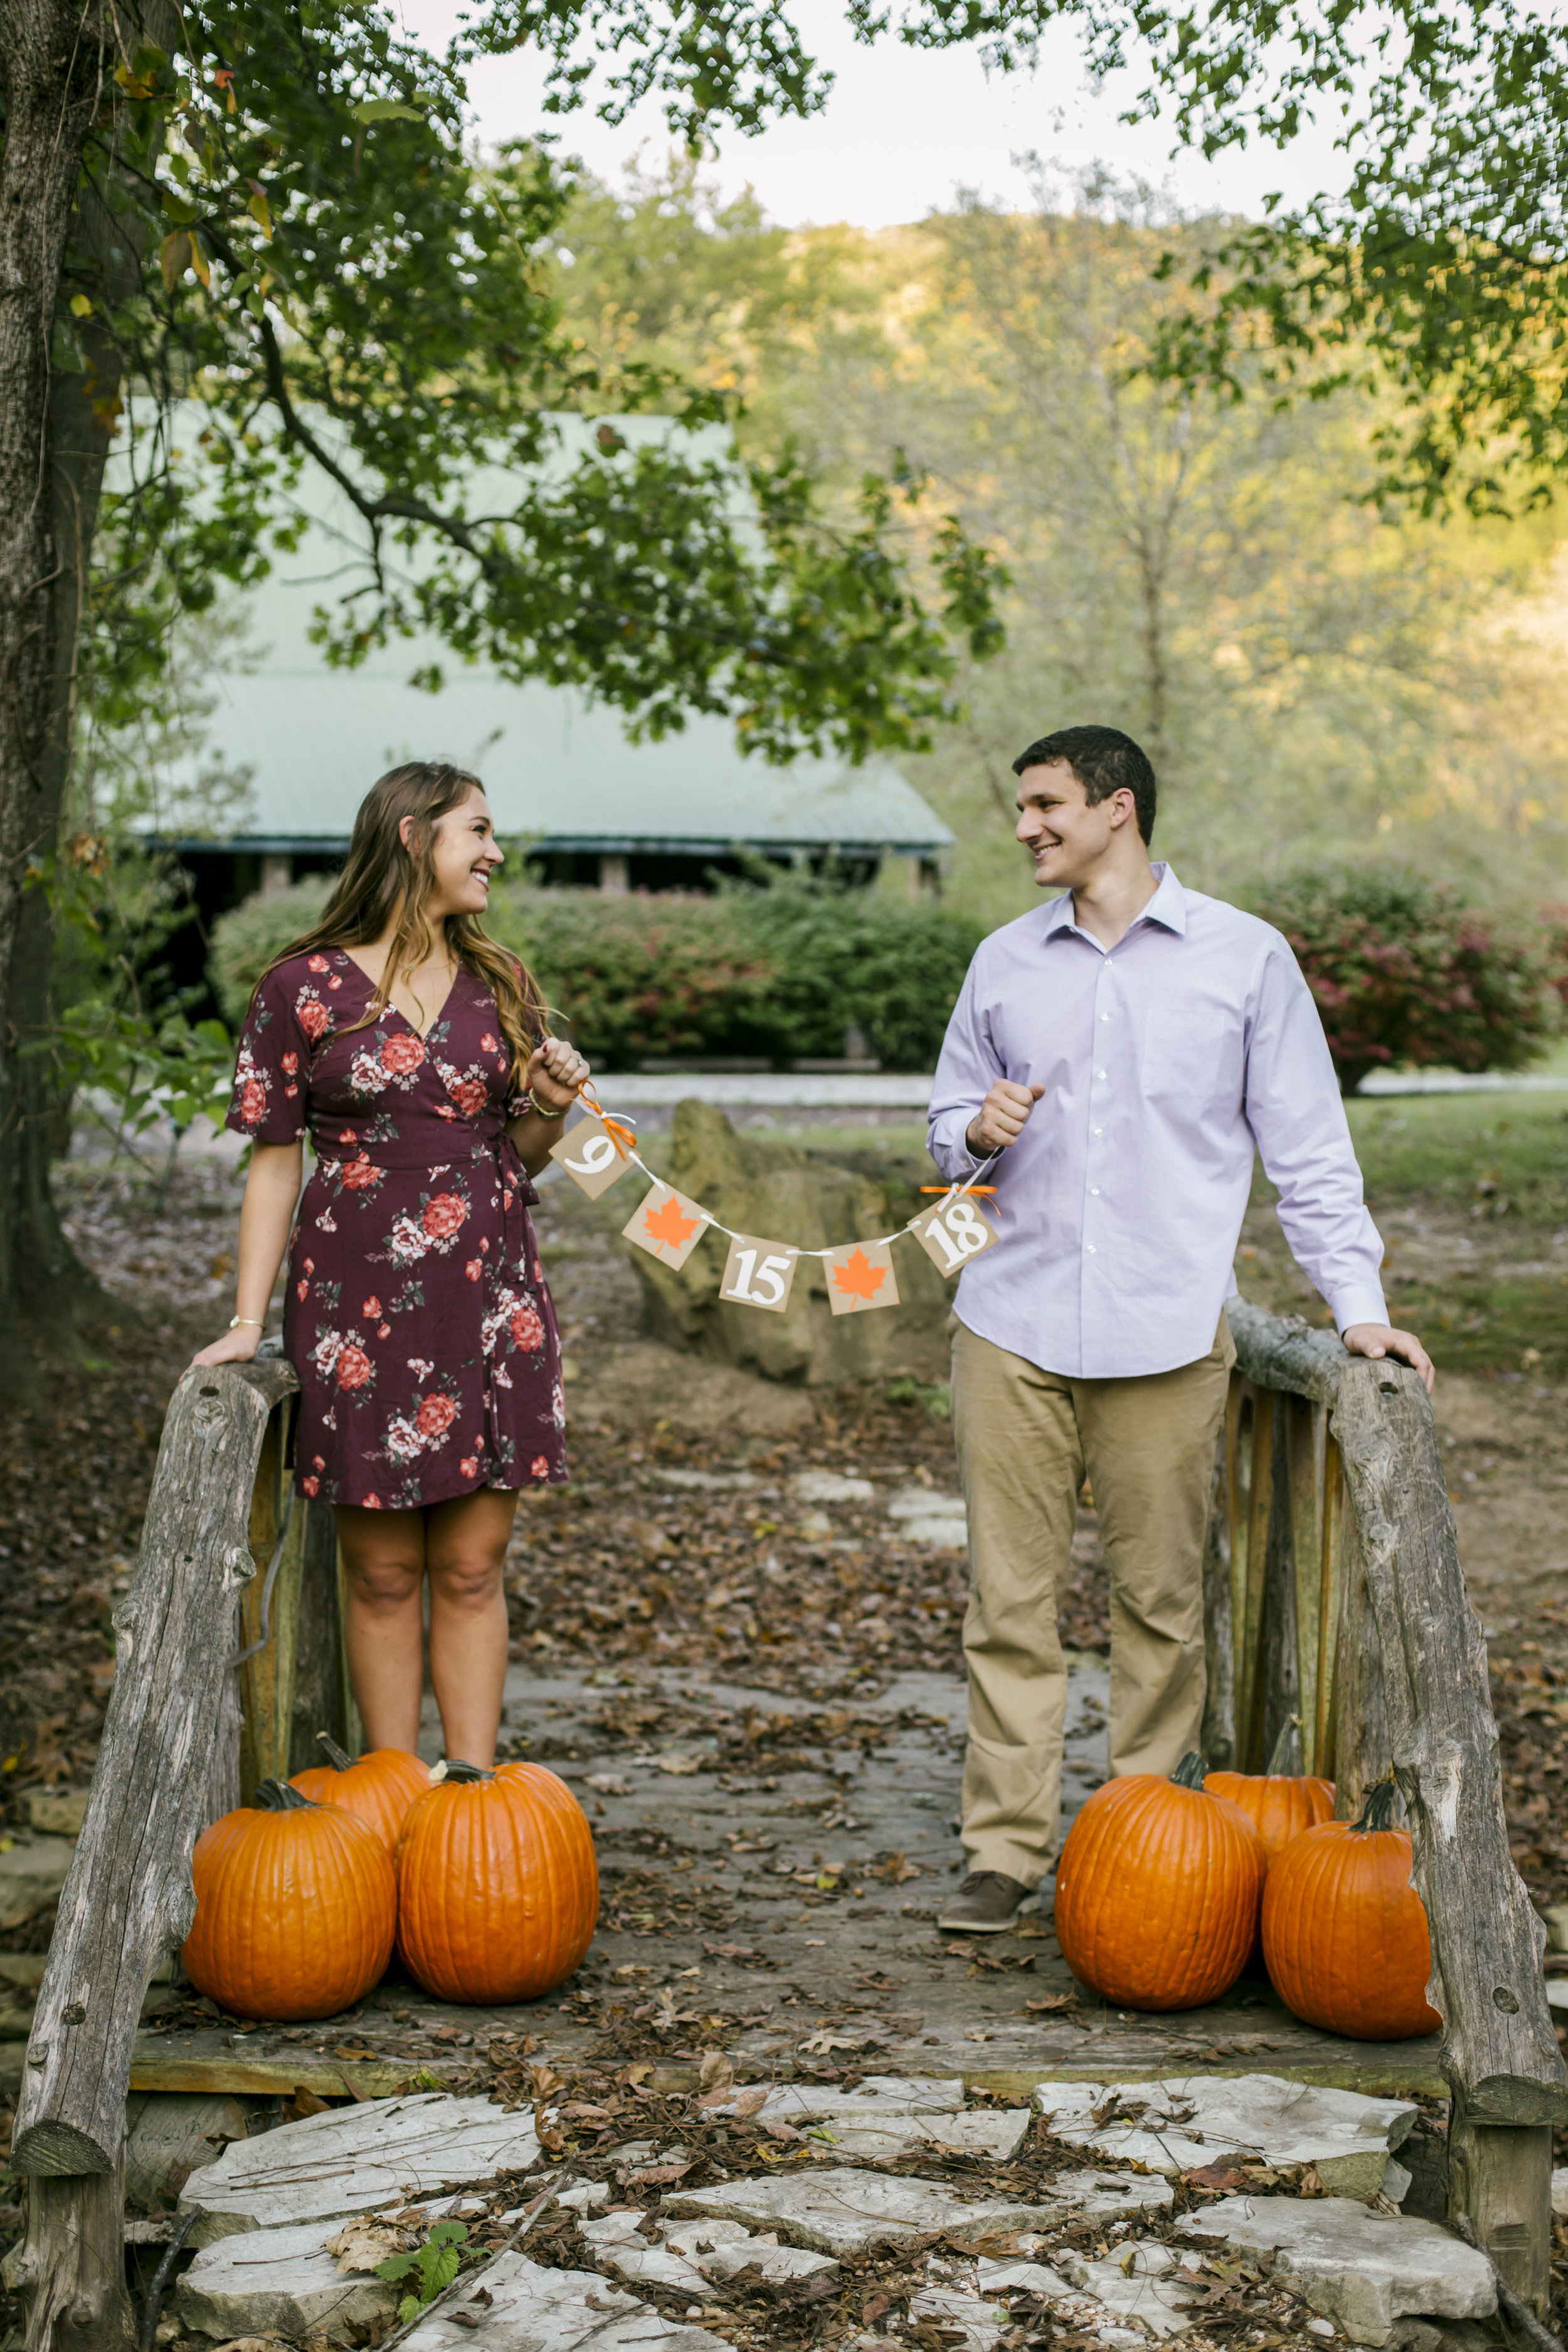 Rebecca_K_Clark_Photography_Engagement_Gallery_Web-18.JPG